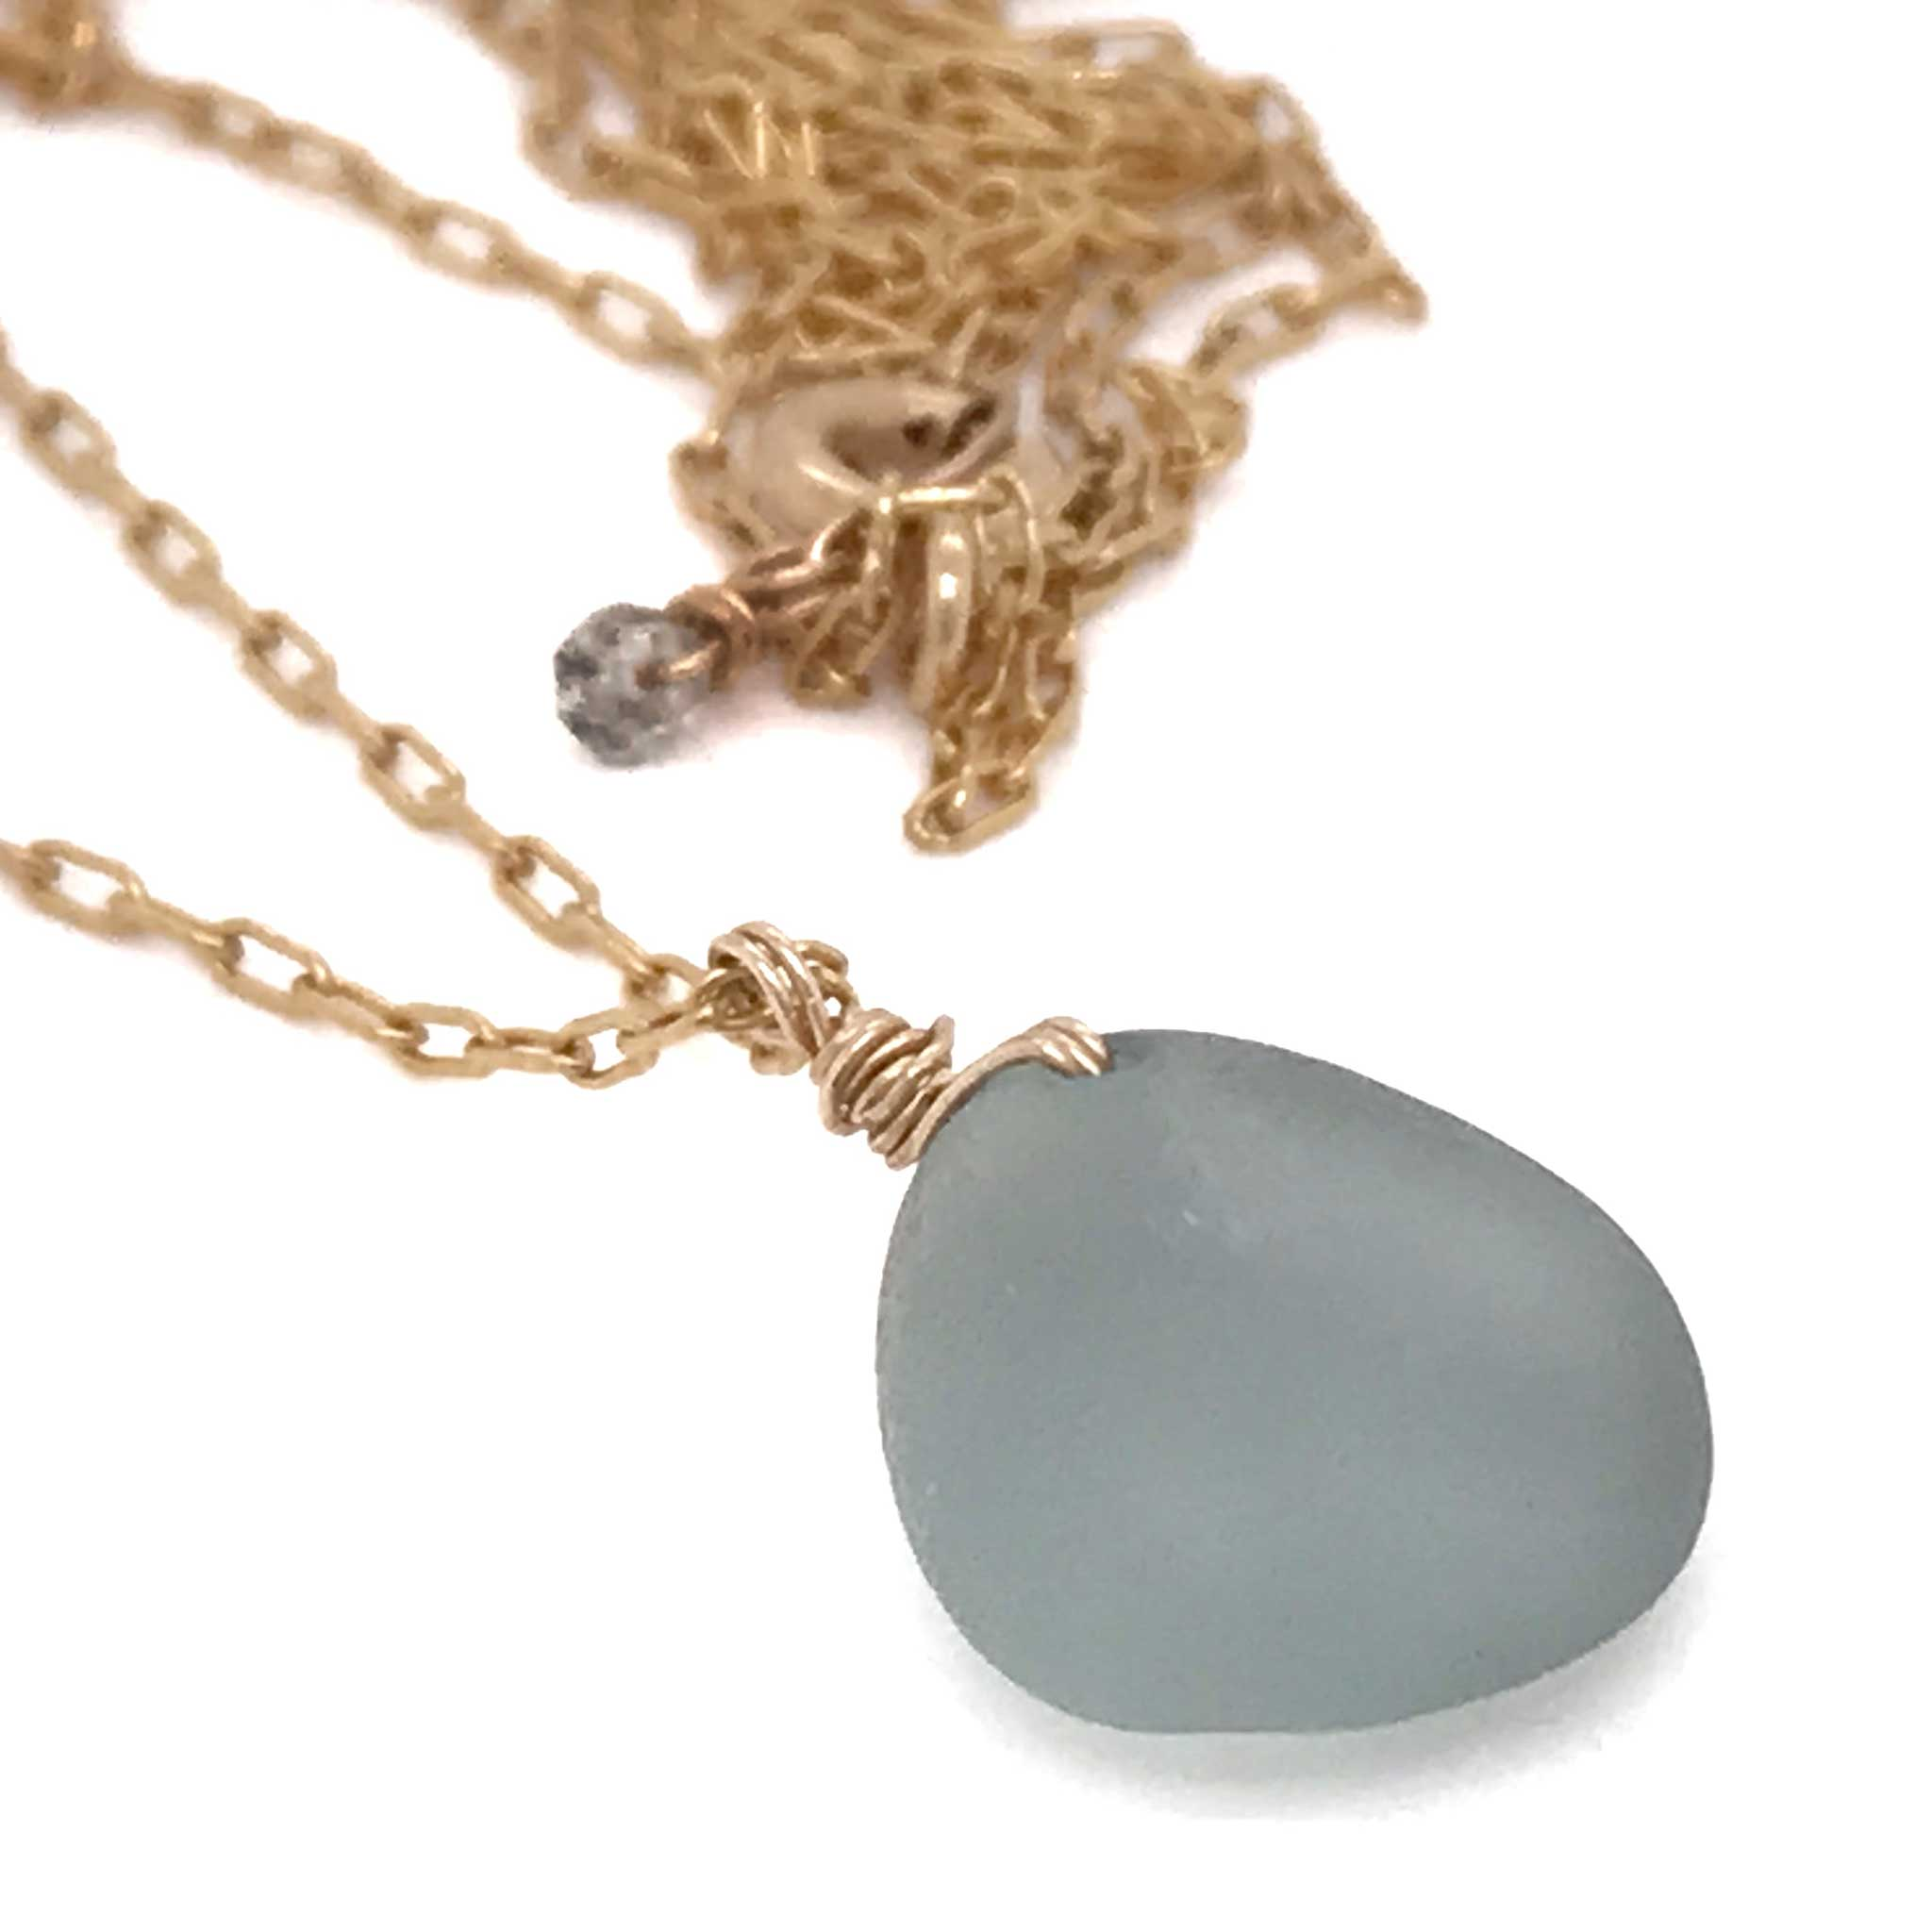 grey seaglass necklace on gold chain kriket broadhurst gifts for women